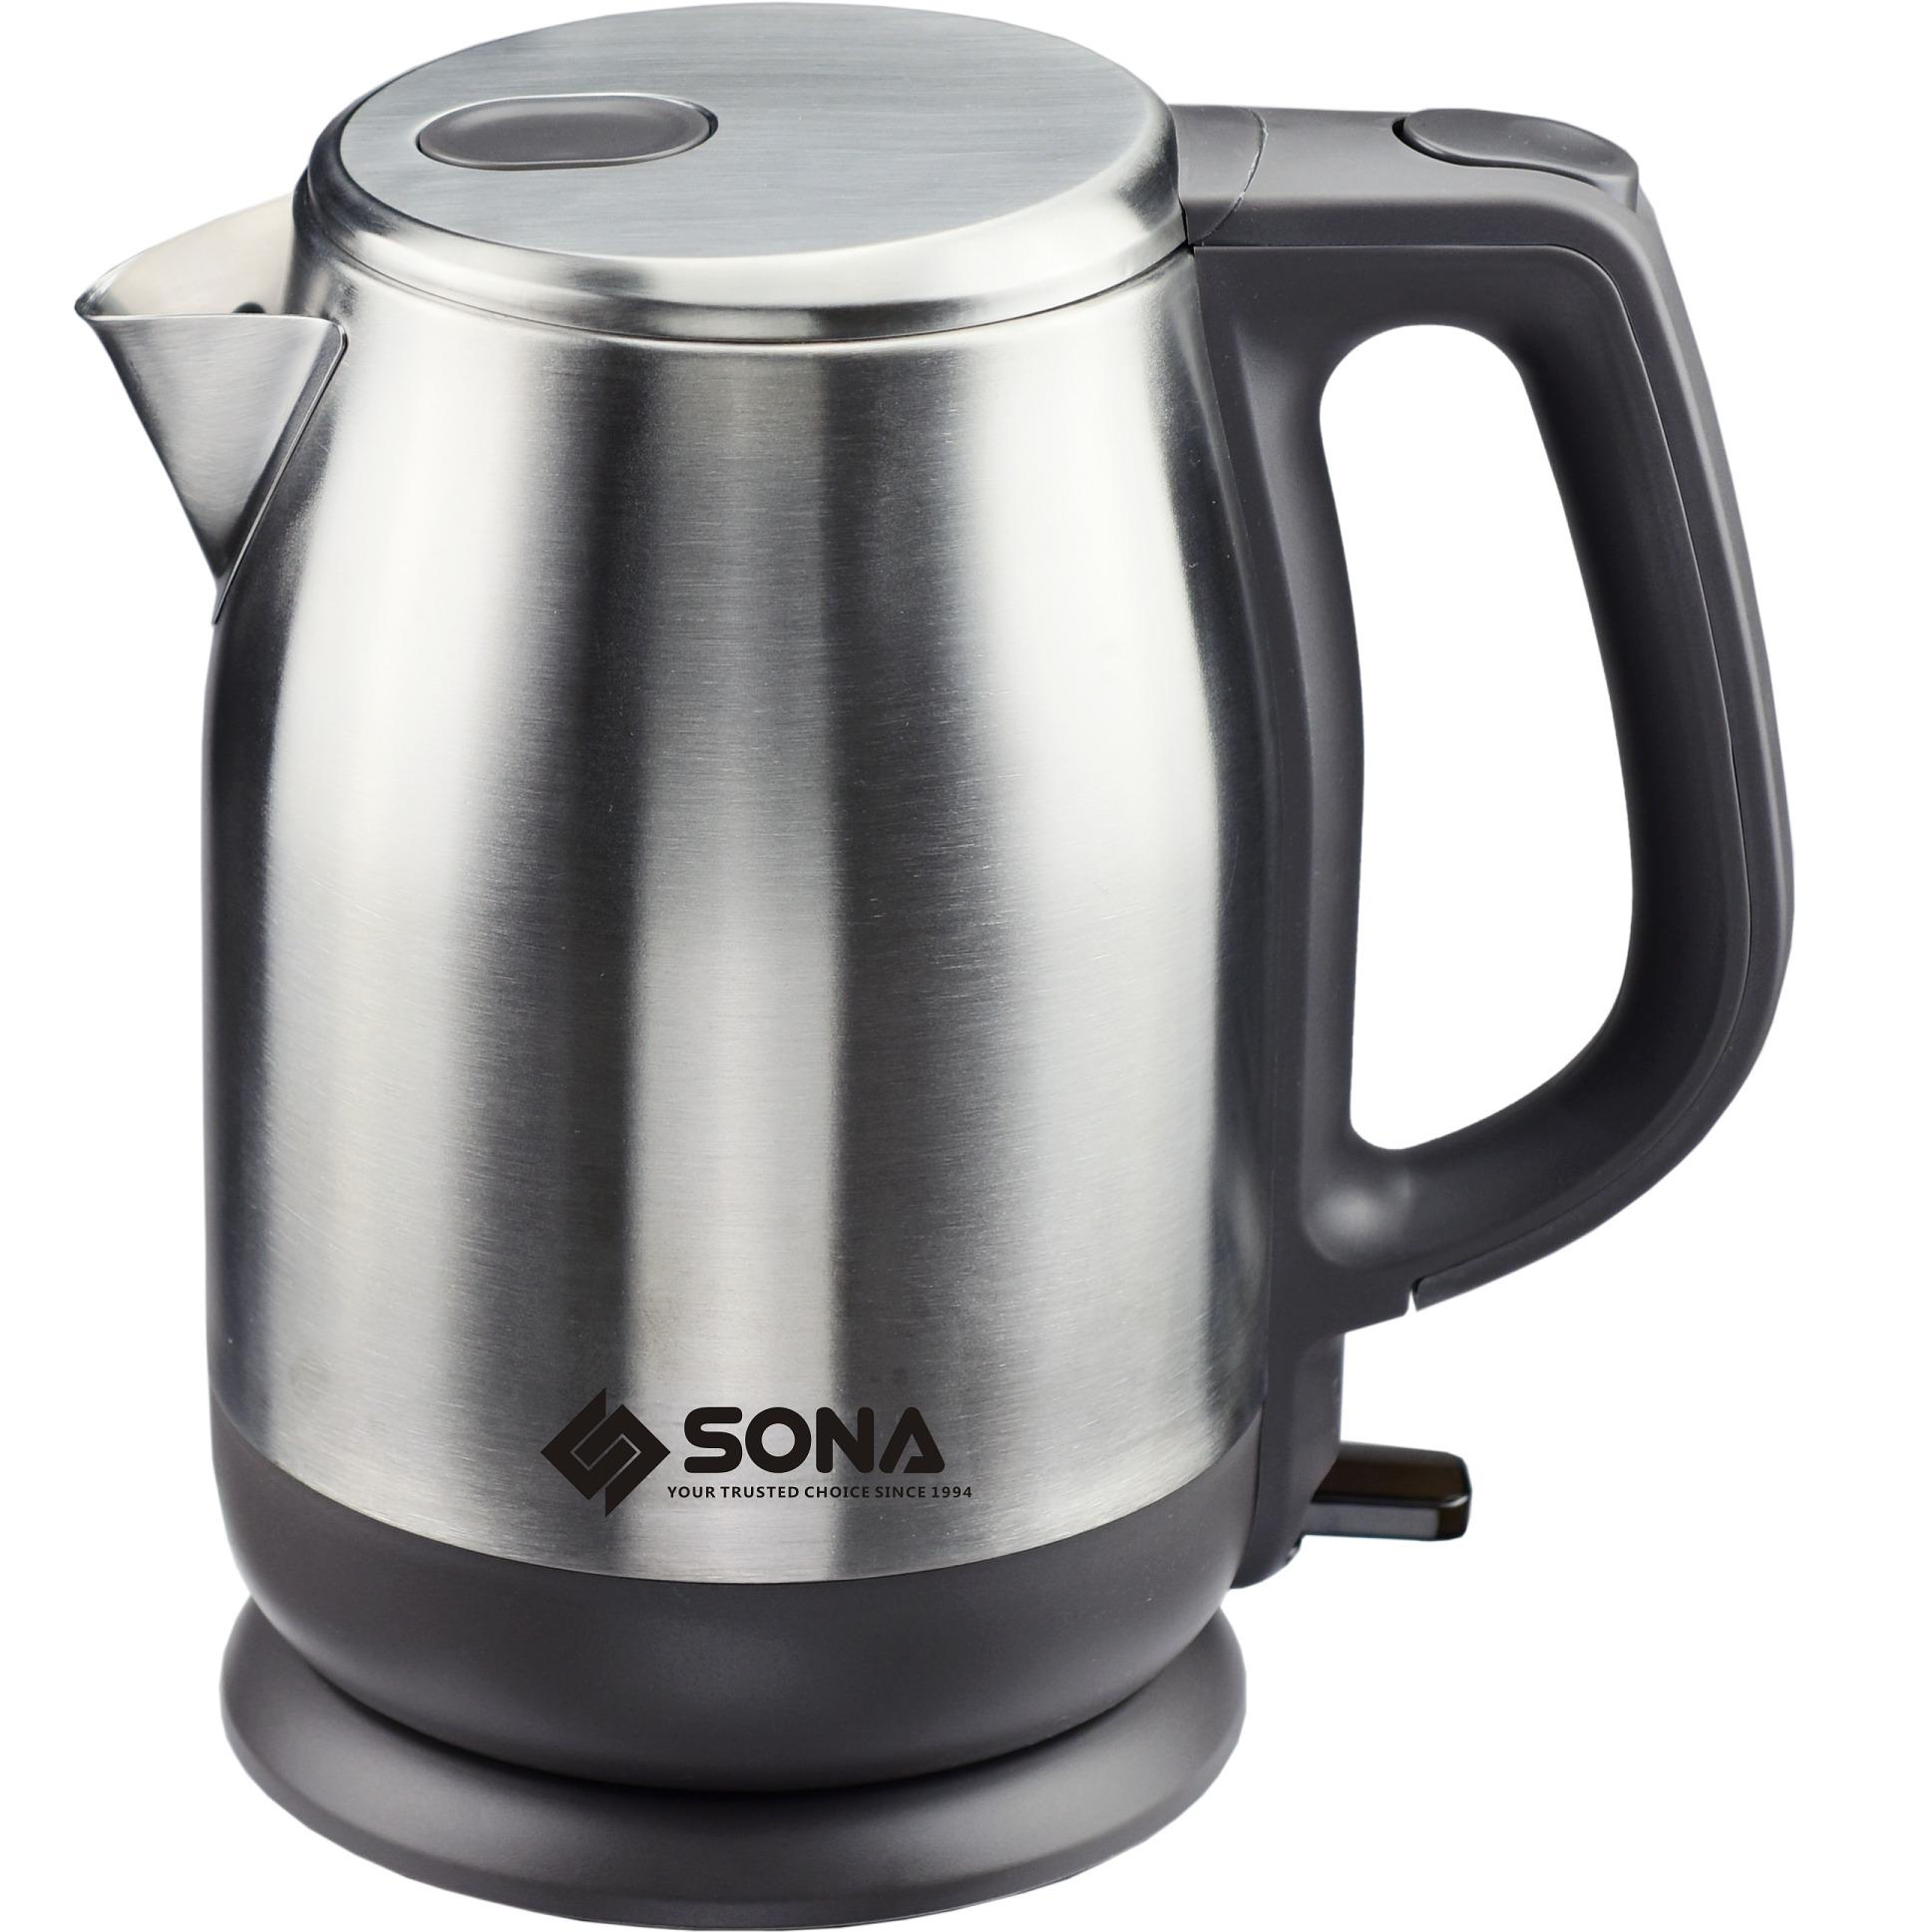 Get The Best Price For Sona Sck5011 Stainless Steel Kettle Jug